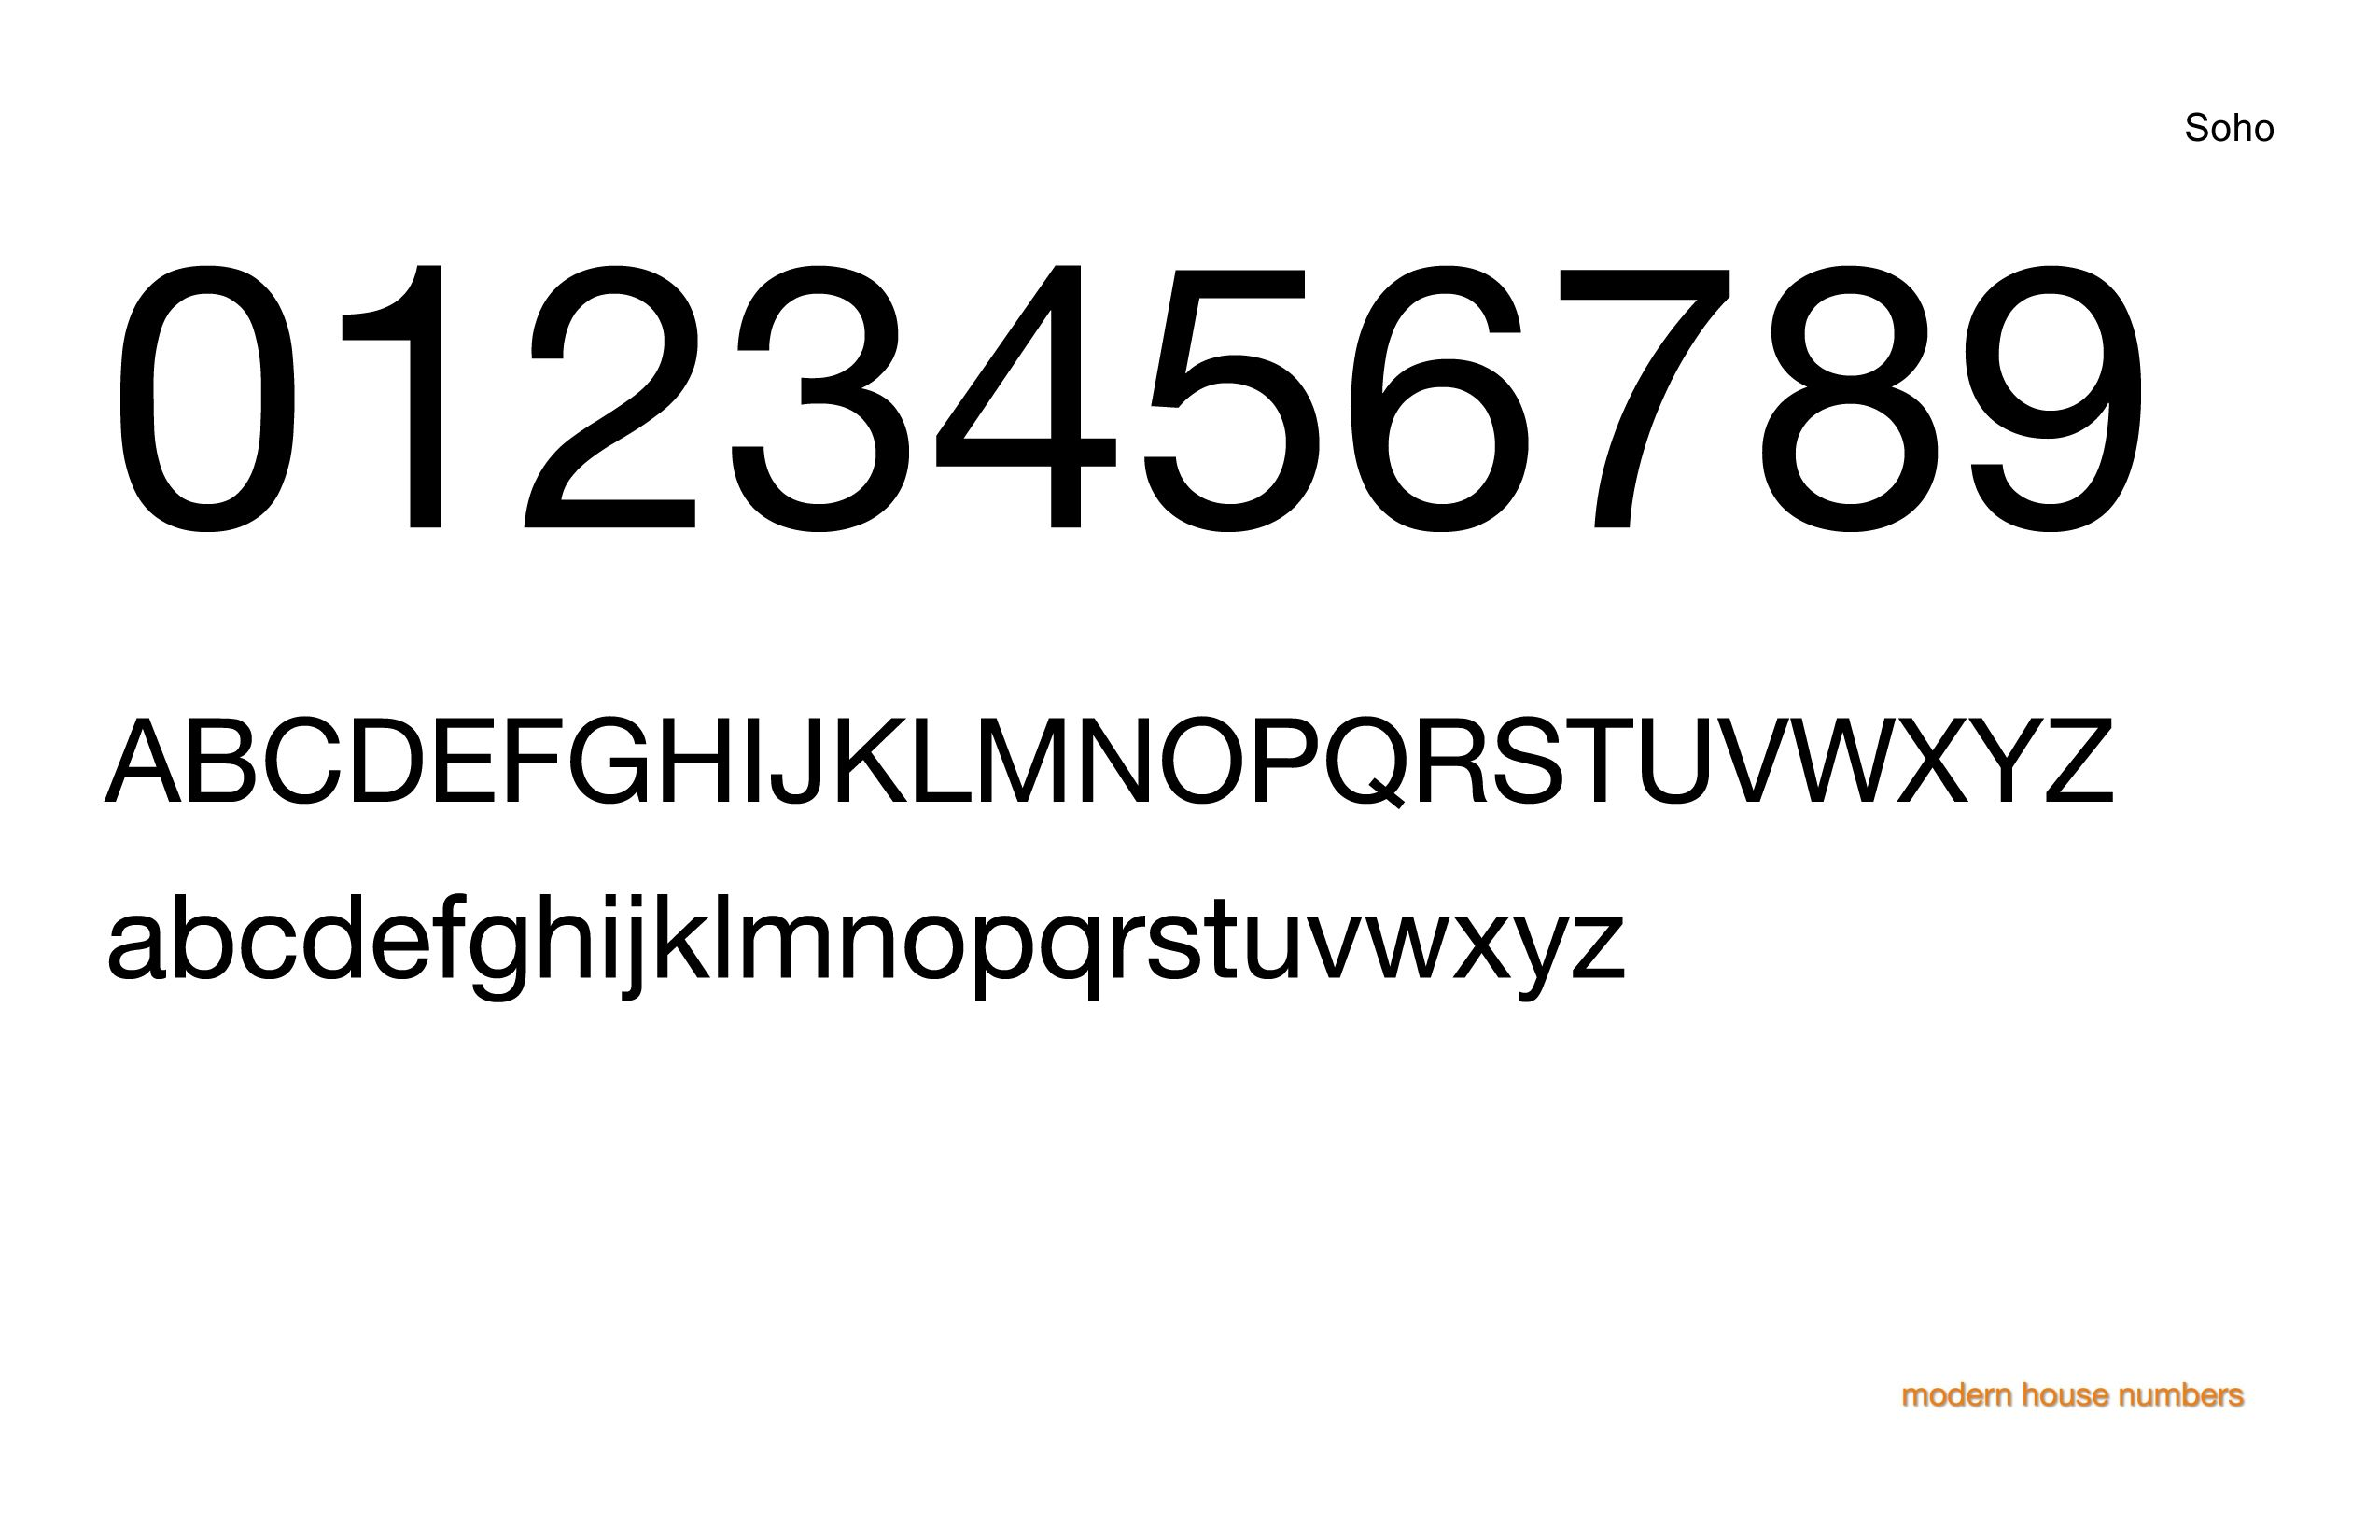 Check out our modern house numbers soho font www modernhousenumbers com